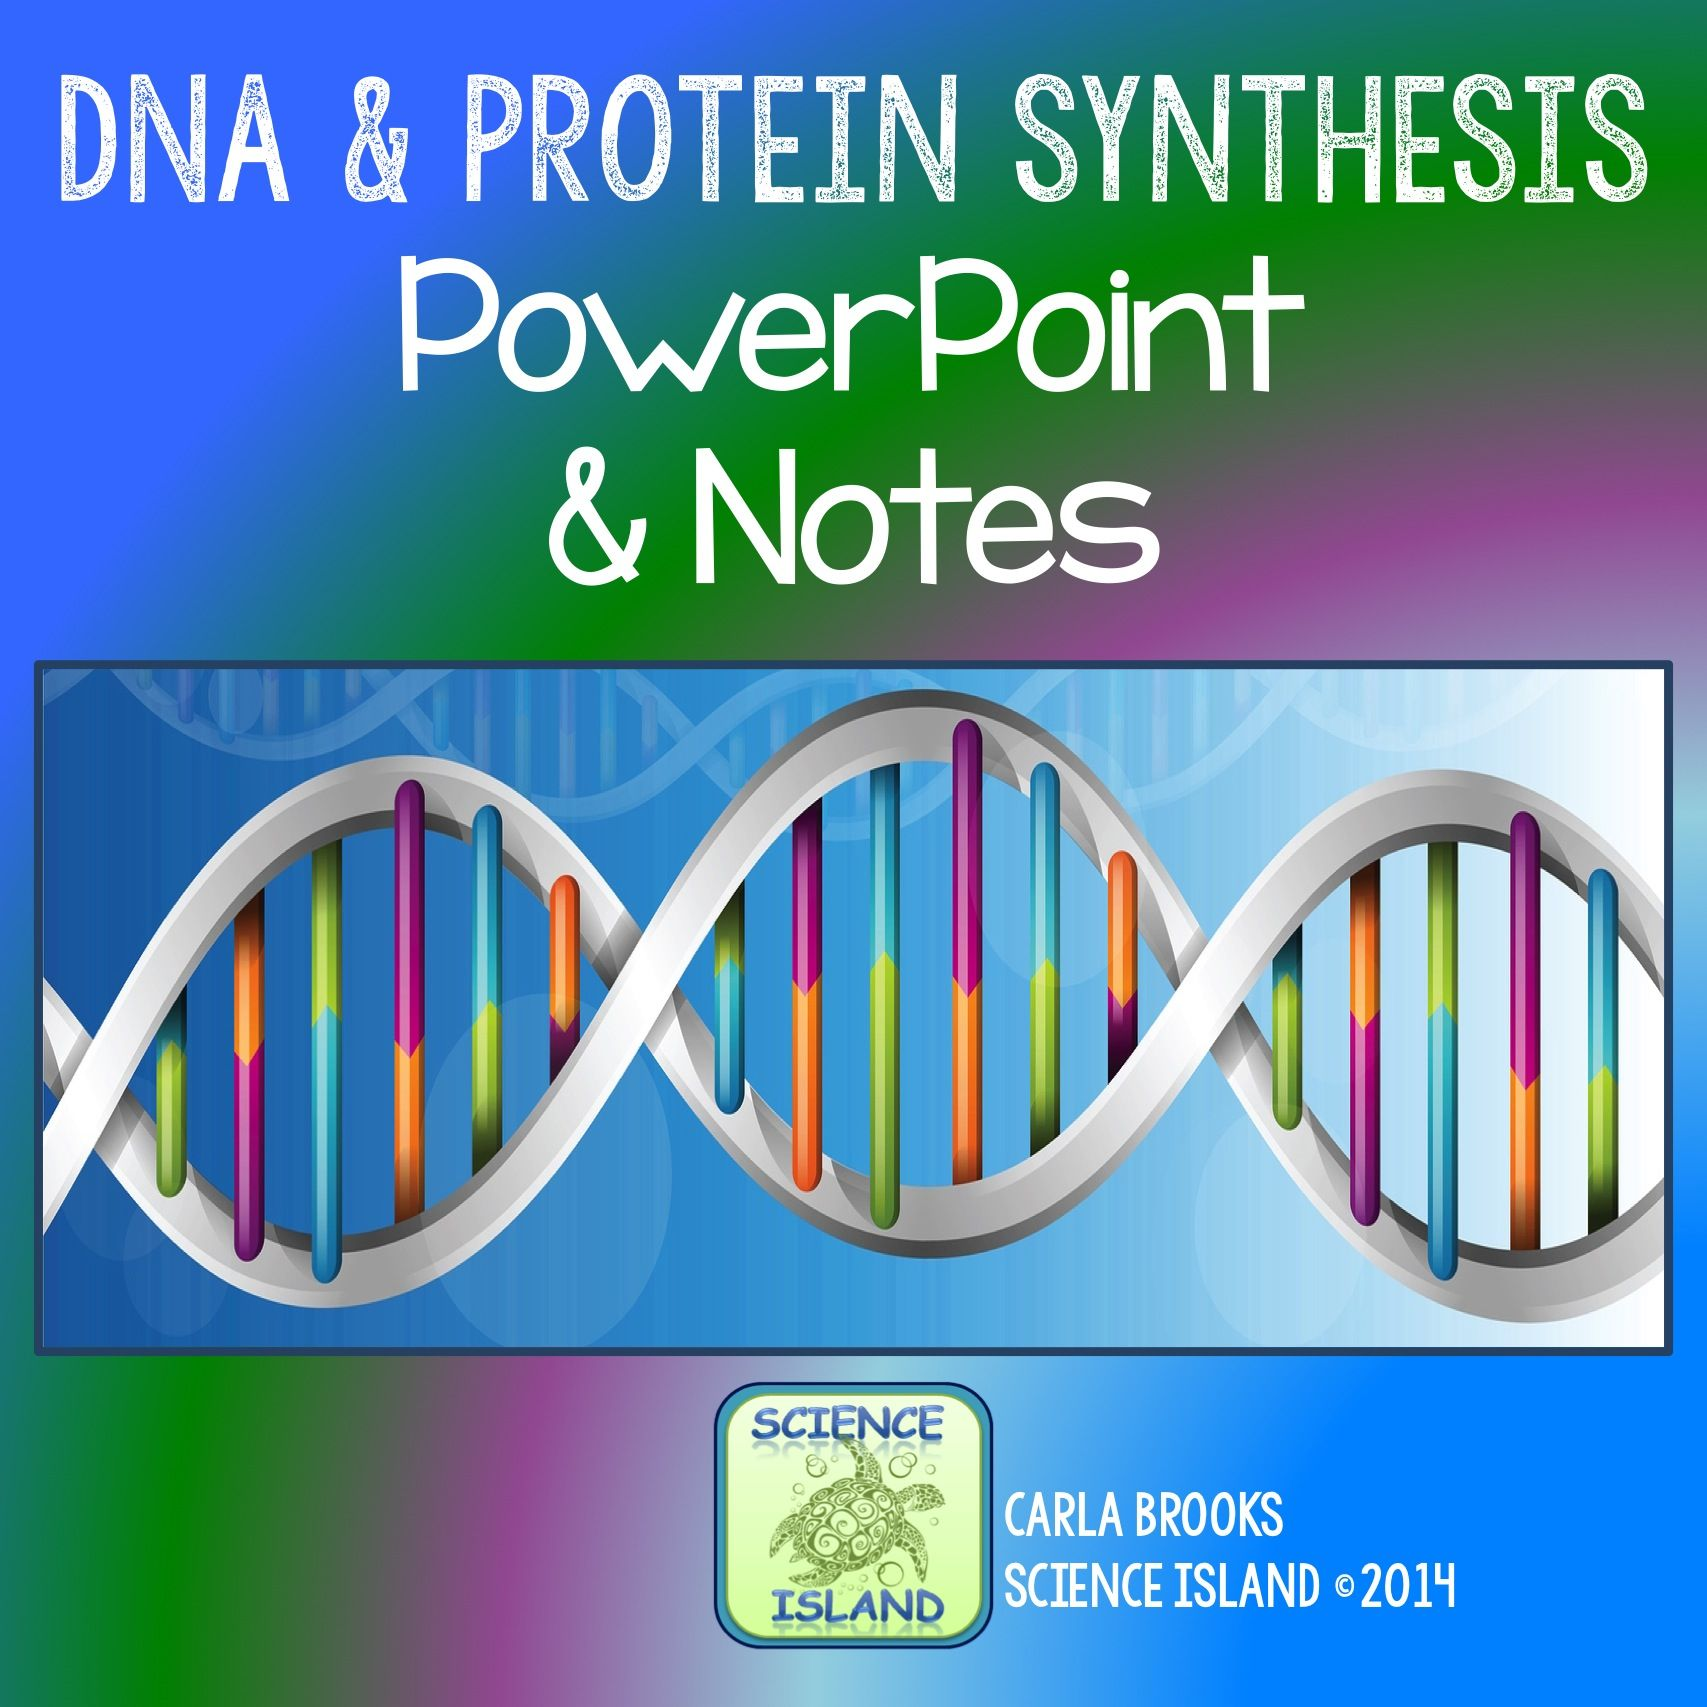 Powerpoint And Notes Covers Dna Structure Replication Transcription Translation And Mutations Perfec Powerpoint Lesson Protein Synthesis Teaching Biology [ 1707 x 1707 Pixel ]